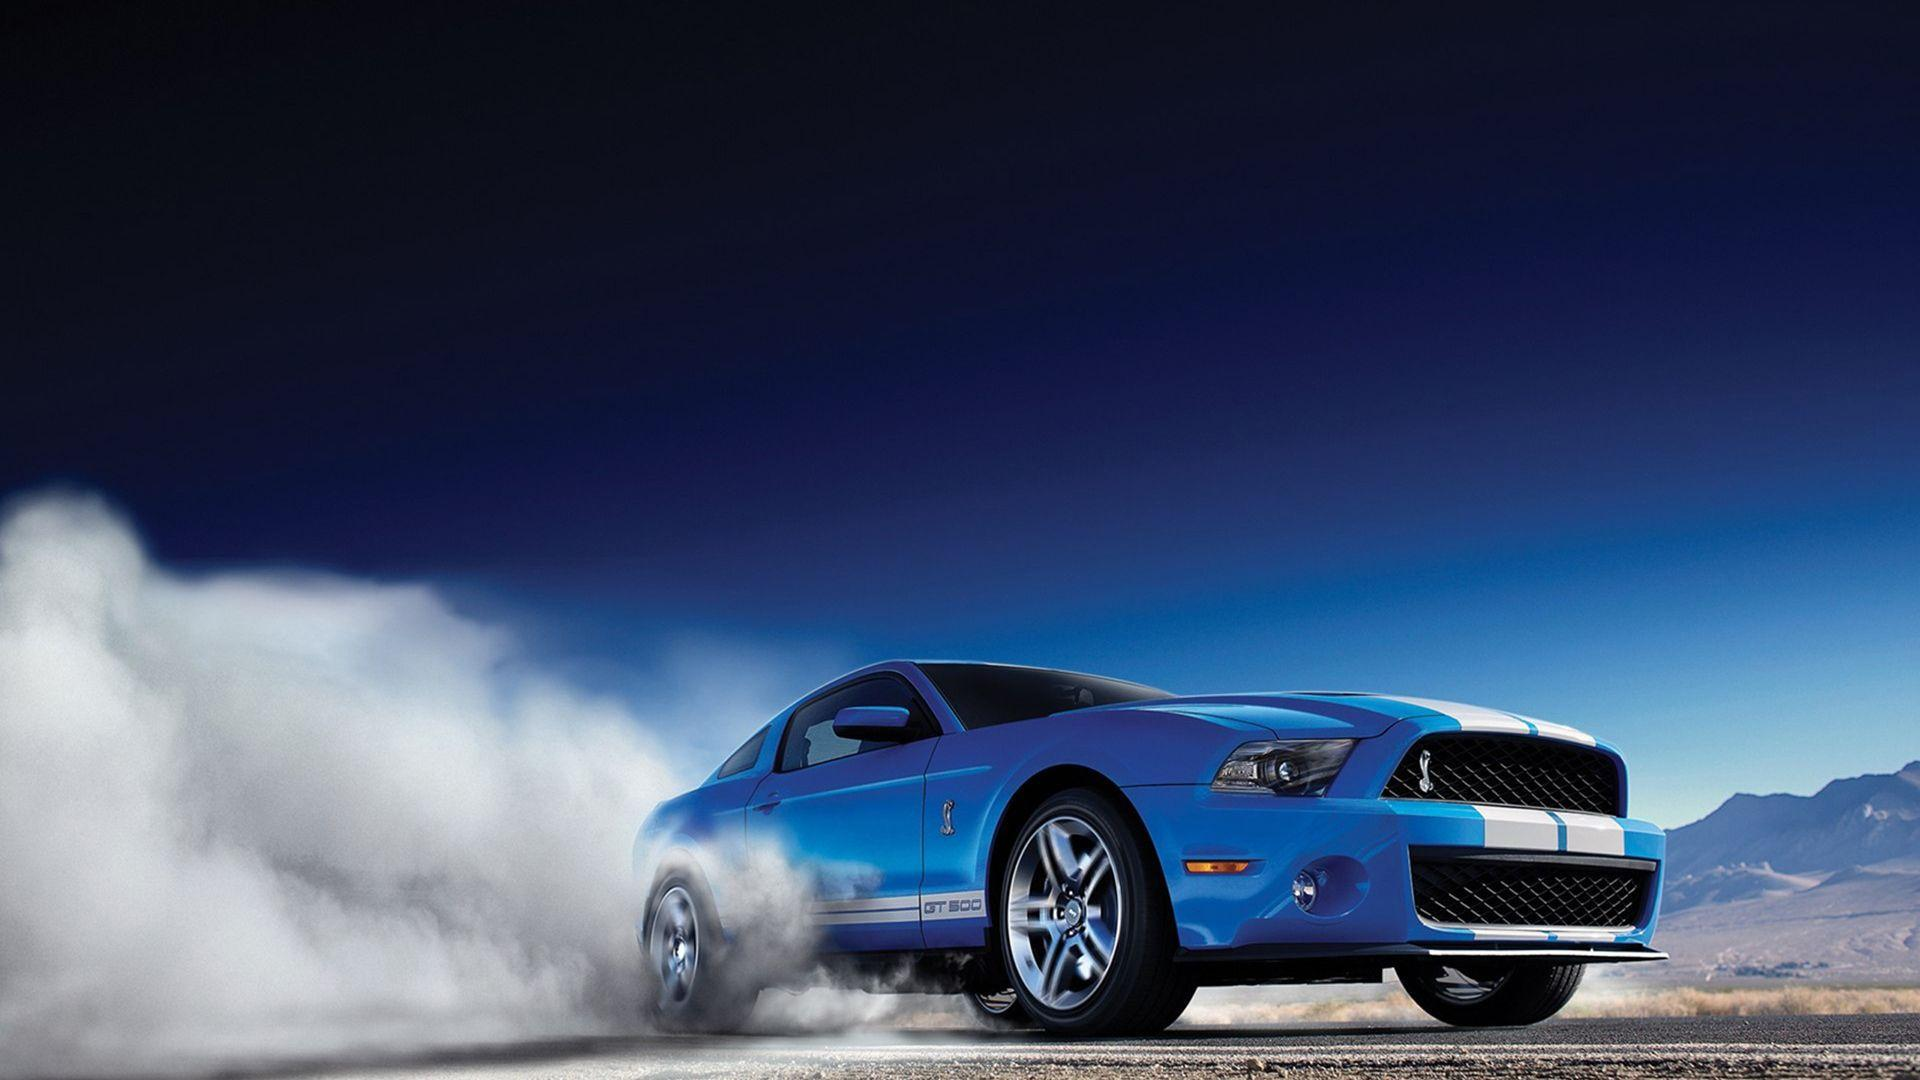 2015 Ford Mustang Shelby Wallpapers 1920x1080